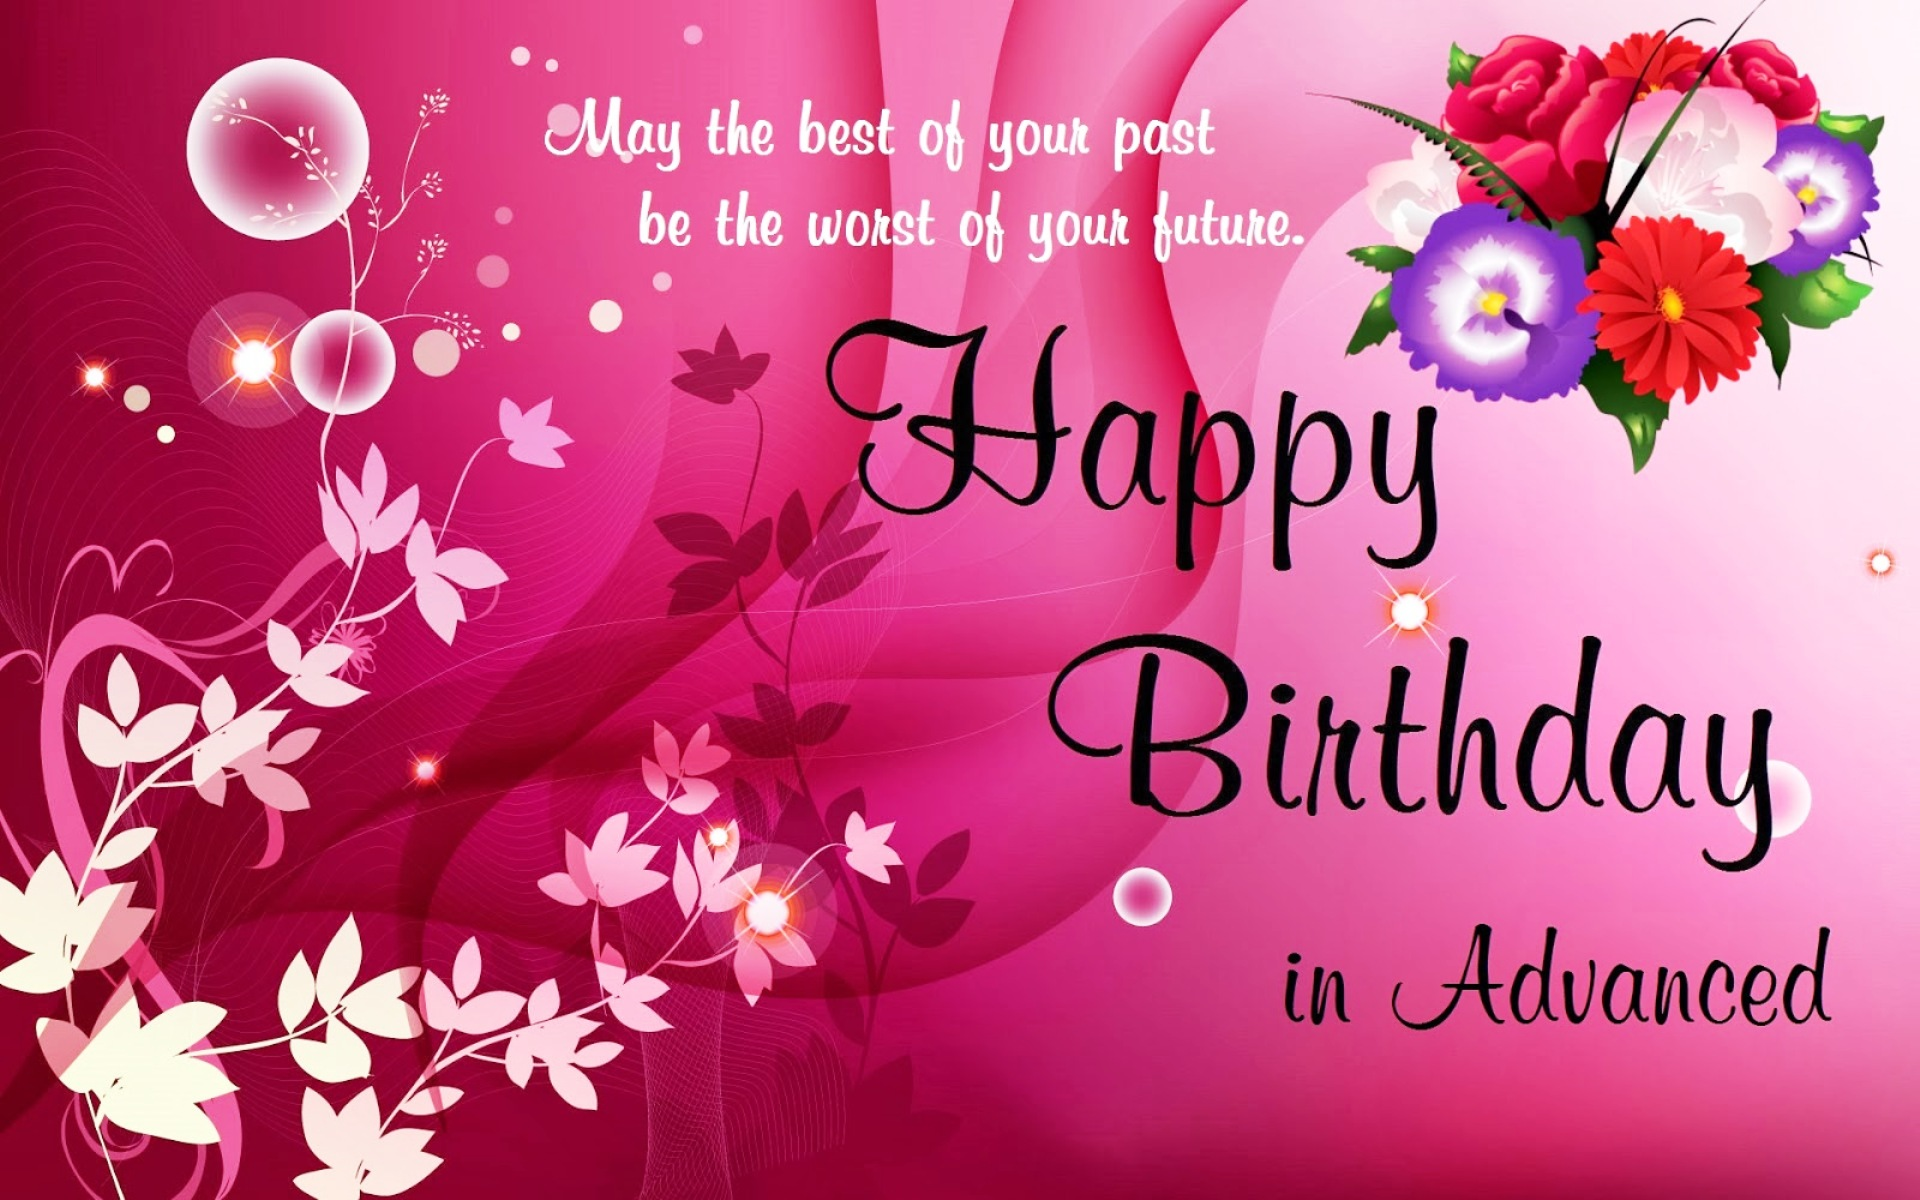 birthday images download hd ; Happy-Birthday-in-Advance-Wishes-Wallpapers